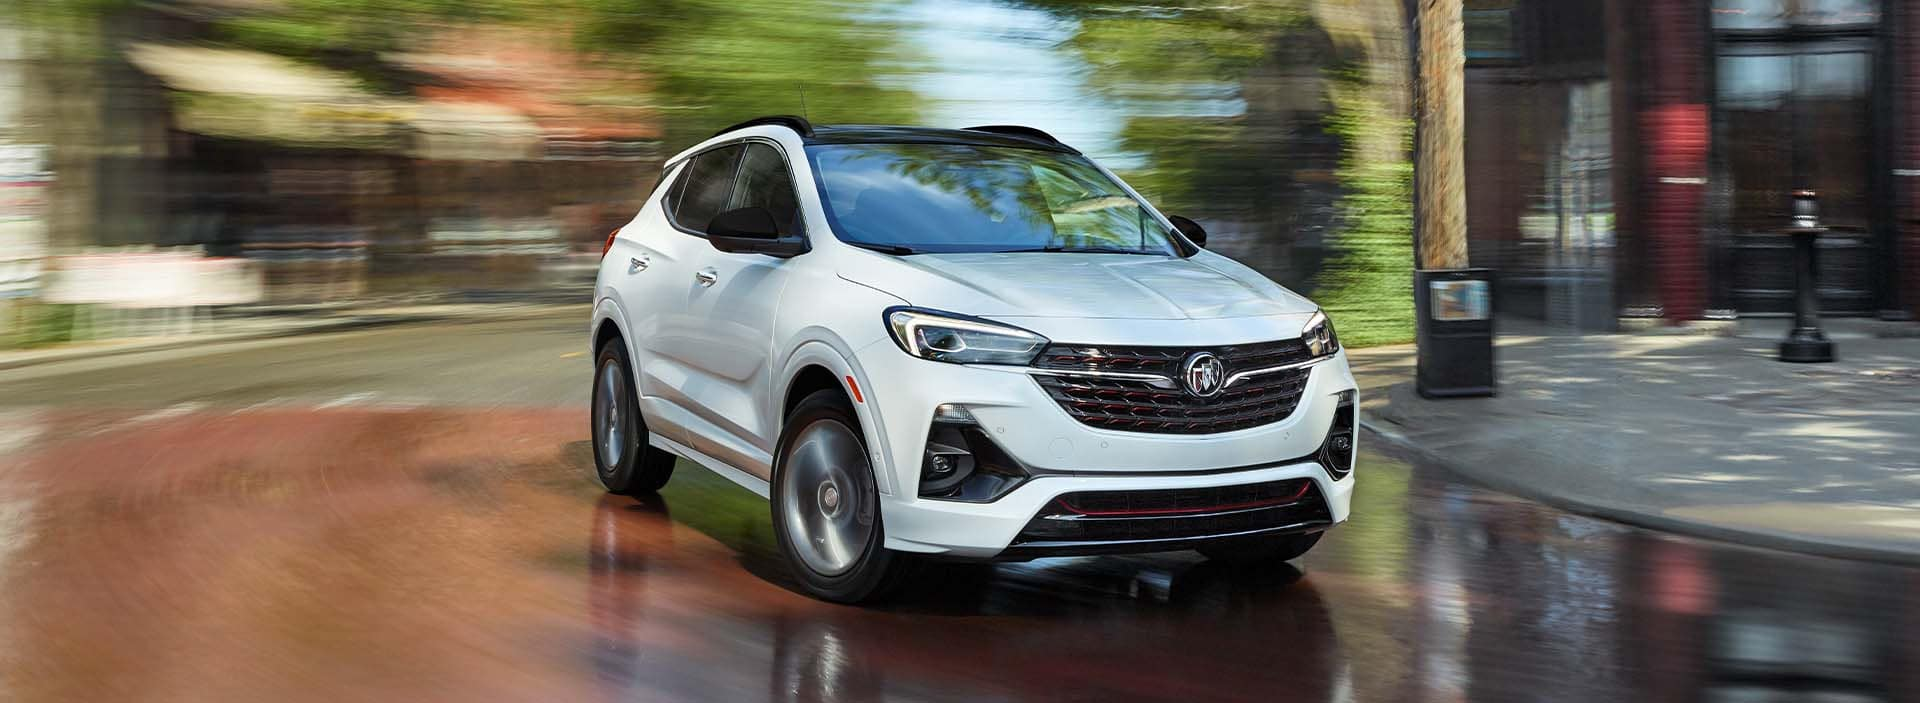 Model Features of the 2022 Buick Encore GX at Jack Giambalvo Buick-GMC | White 2022 Buick Encore GX Driving Quickly Around Bend in City Street